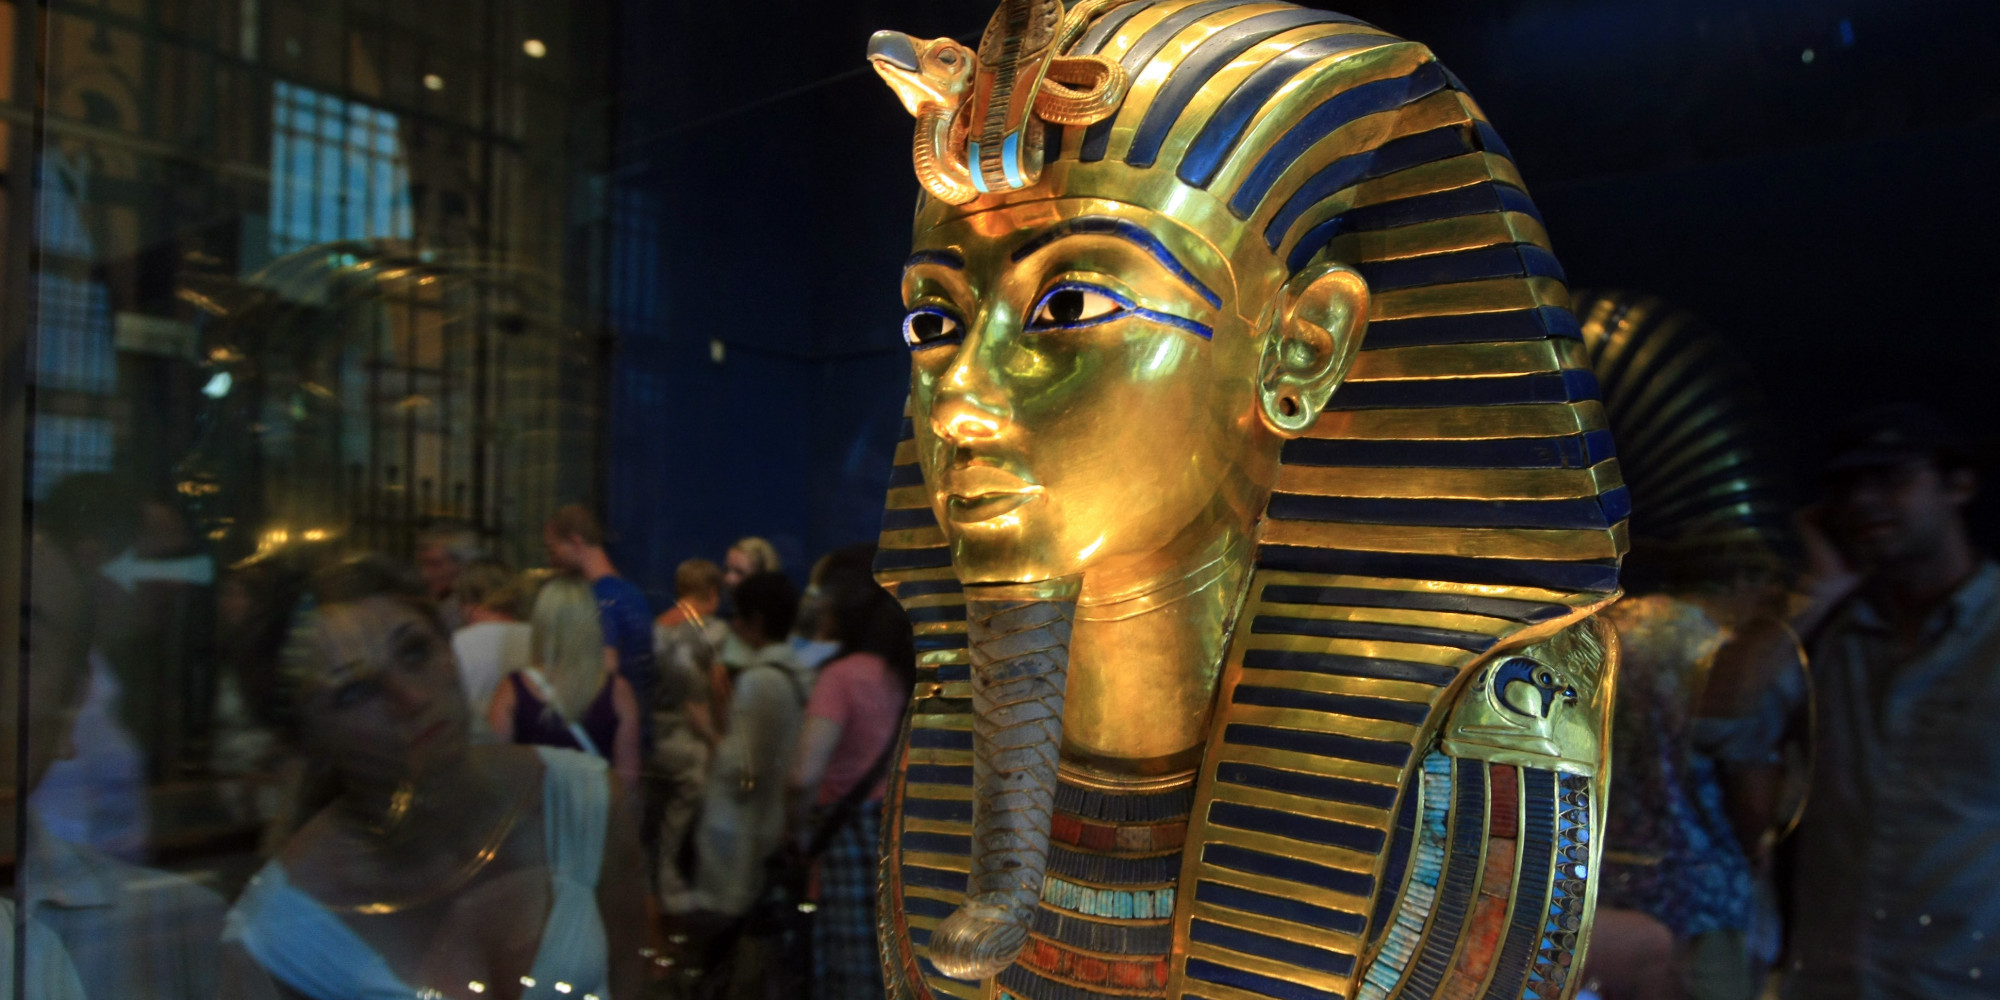 king tut 39 s mask damaged beard snapped off during botched cleaning huffpost. Black Bedroom Furniture Sets. Home Design Ideas